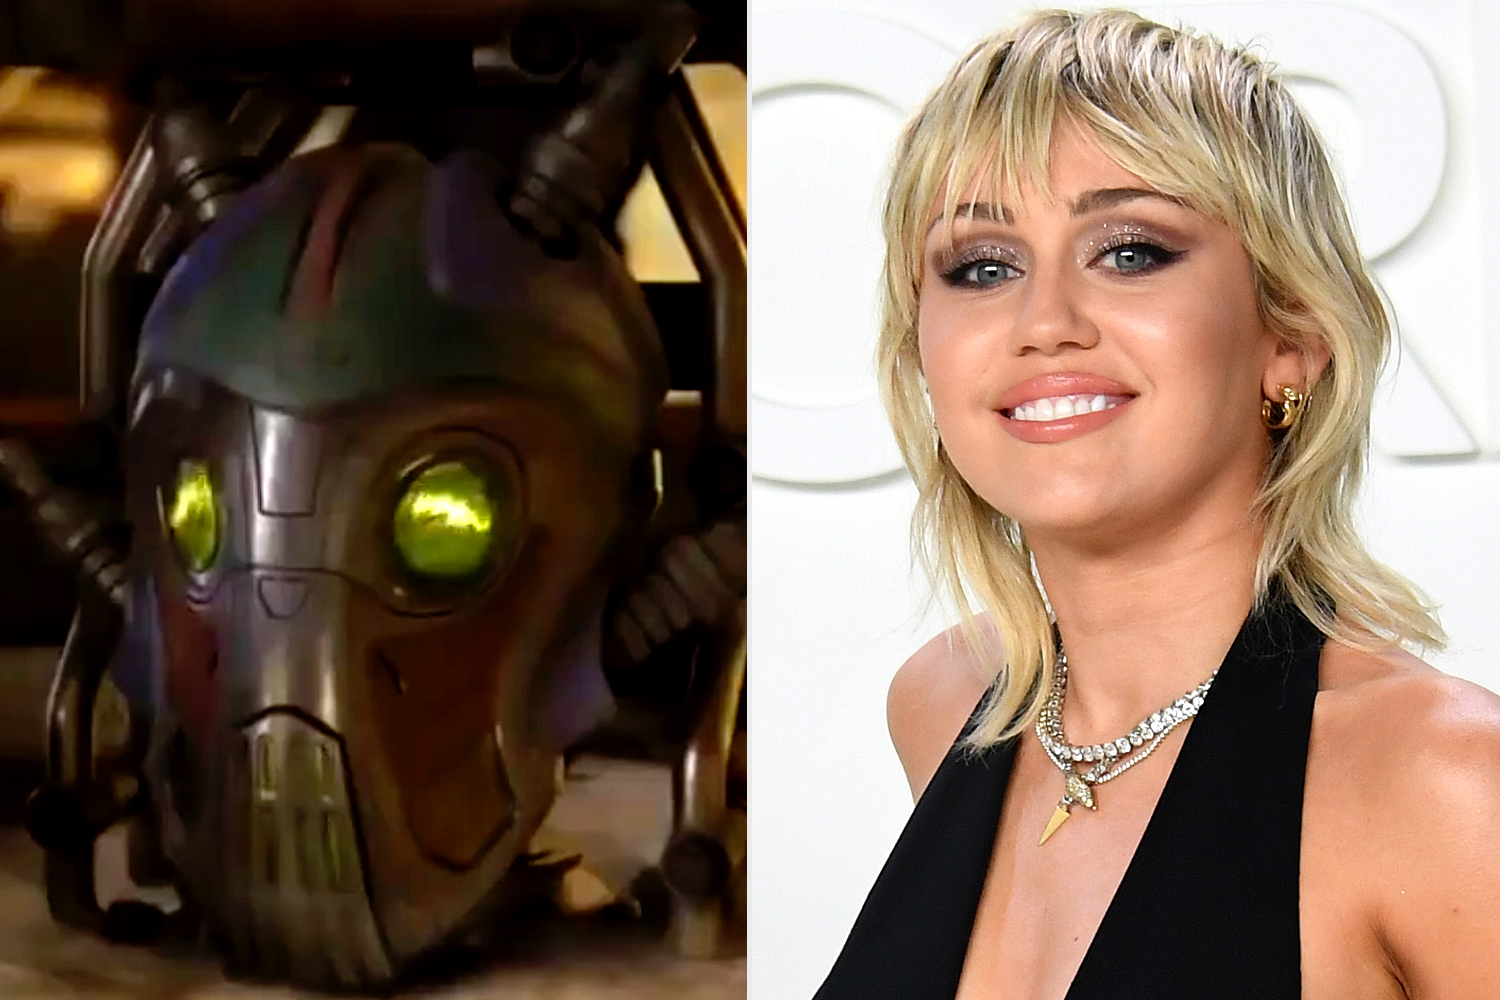 Mainframe, Miley Cyrus